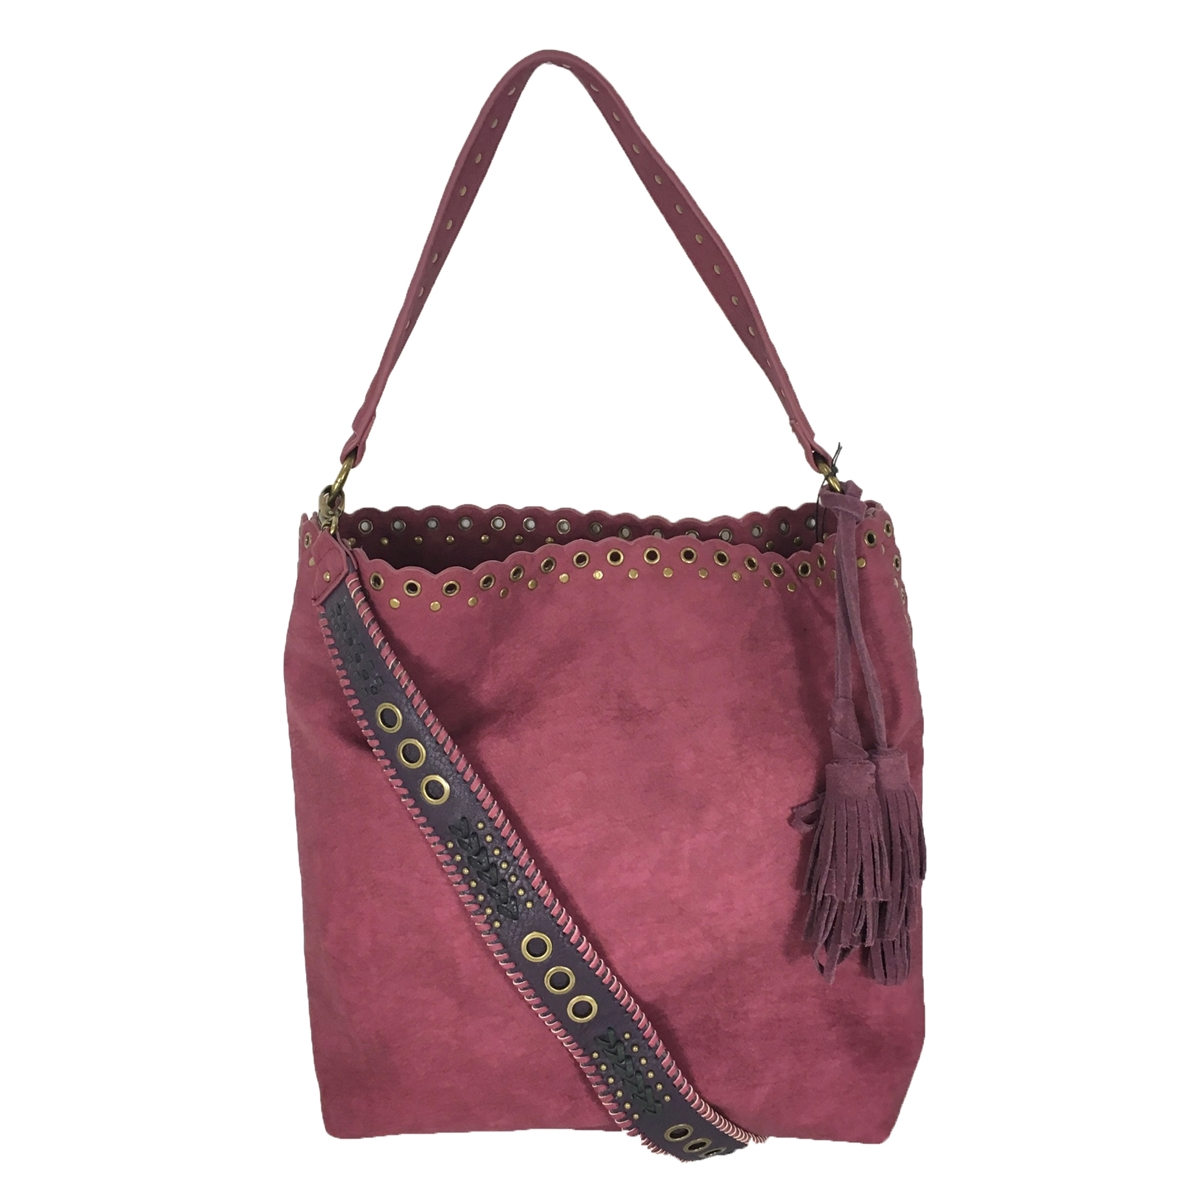 bda4cd36b3e3 Steven By Steve Madden Madaxx Faux Suede Bucket Hobo